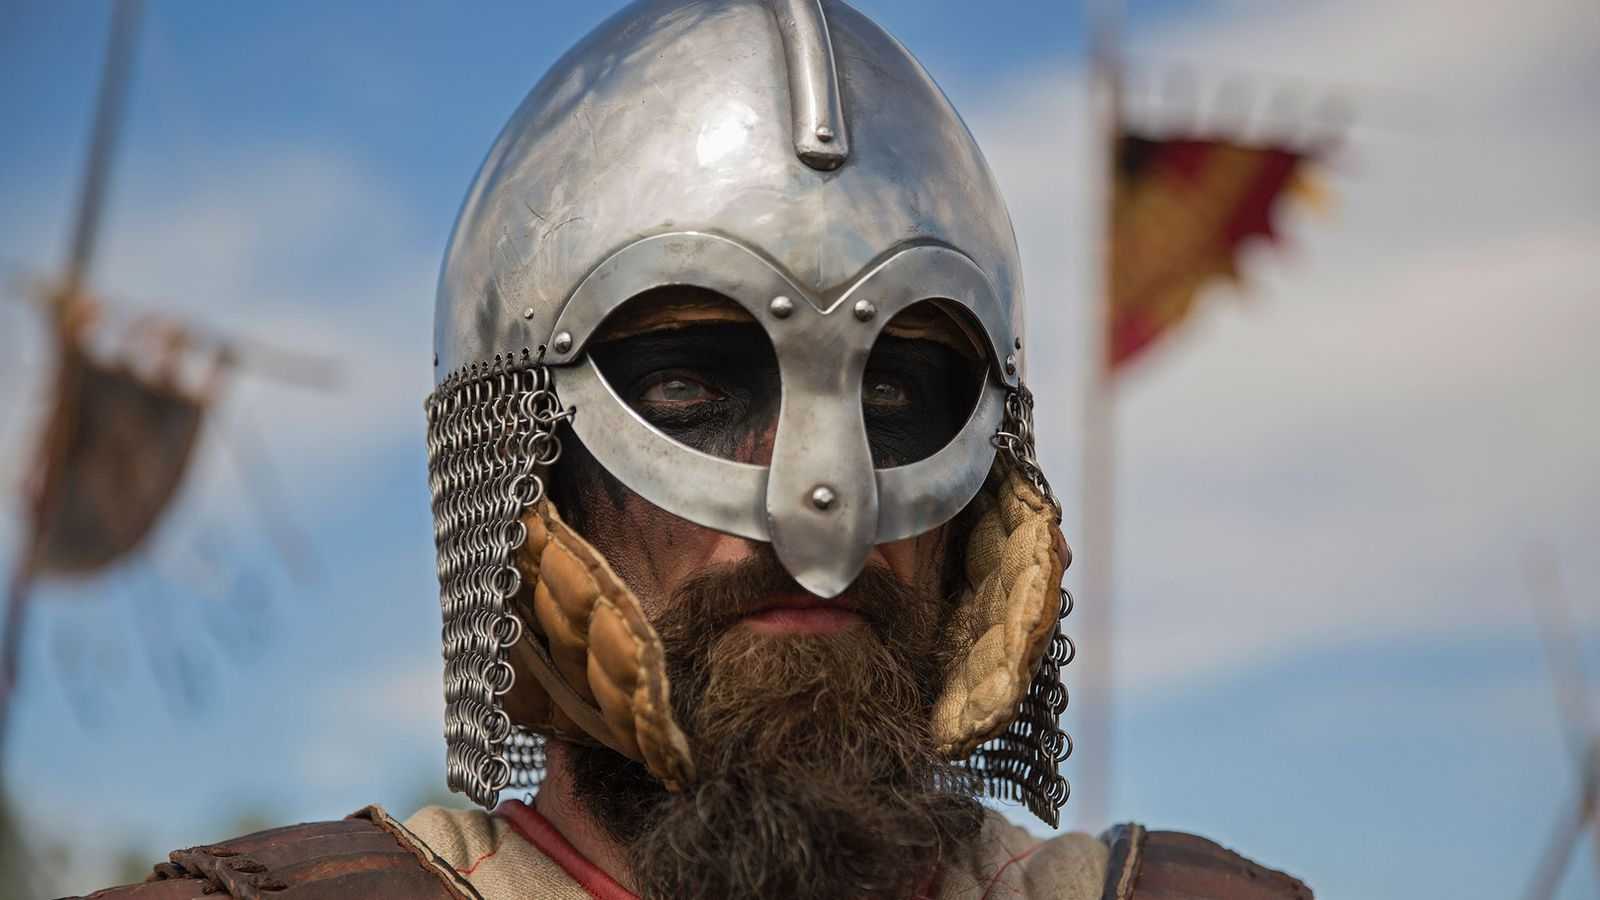 A Viking reenactor in full Viking dress stands at a festival in Poland.